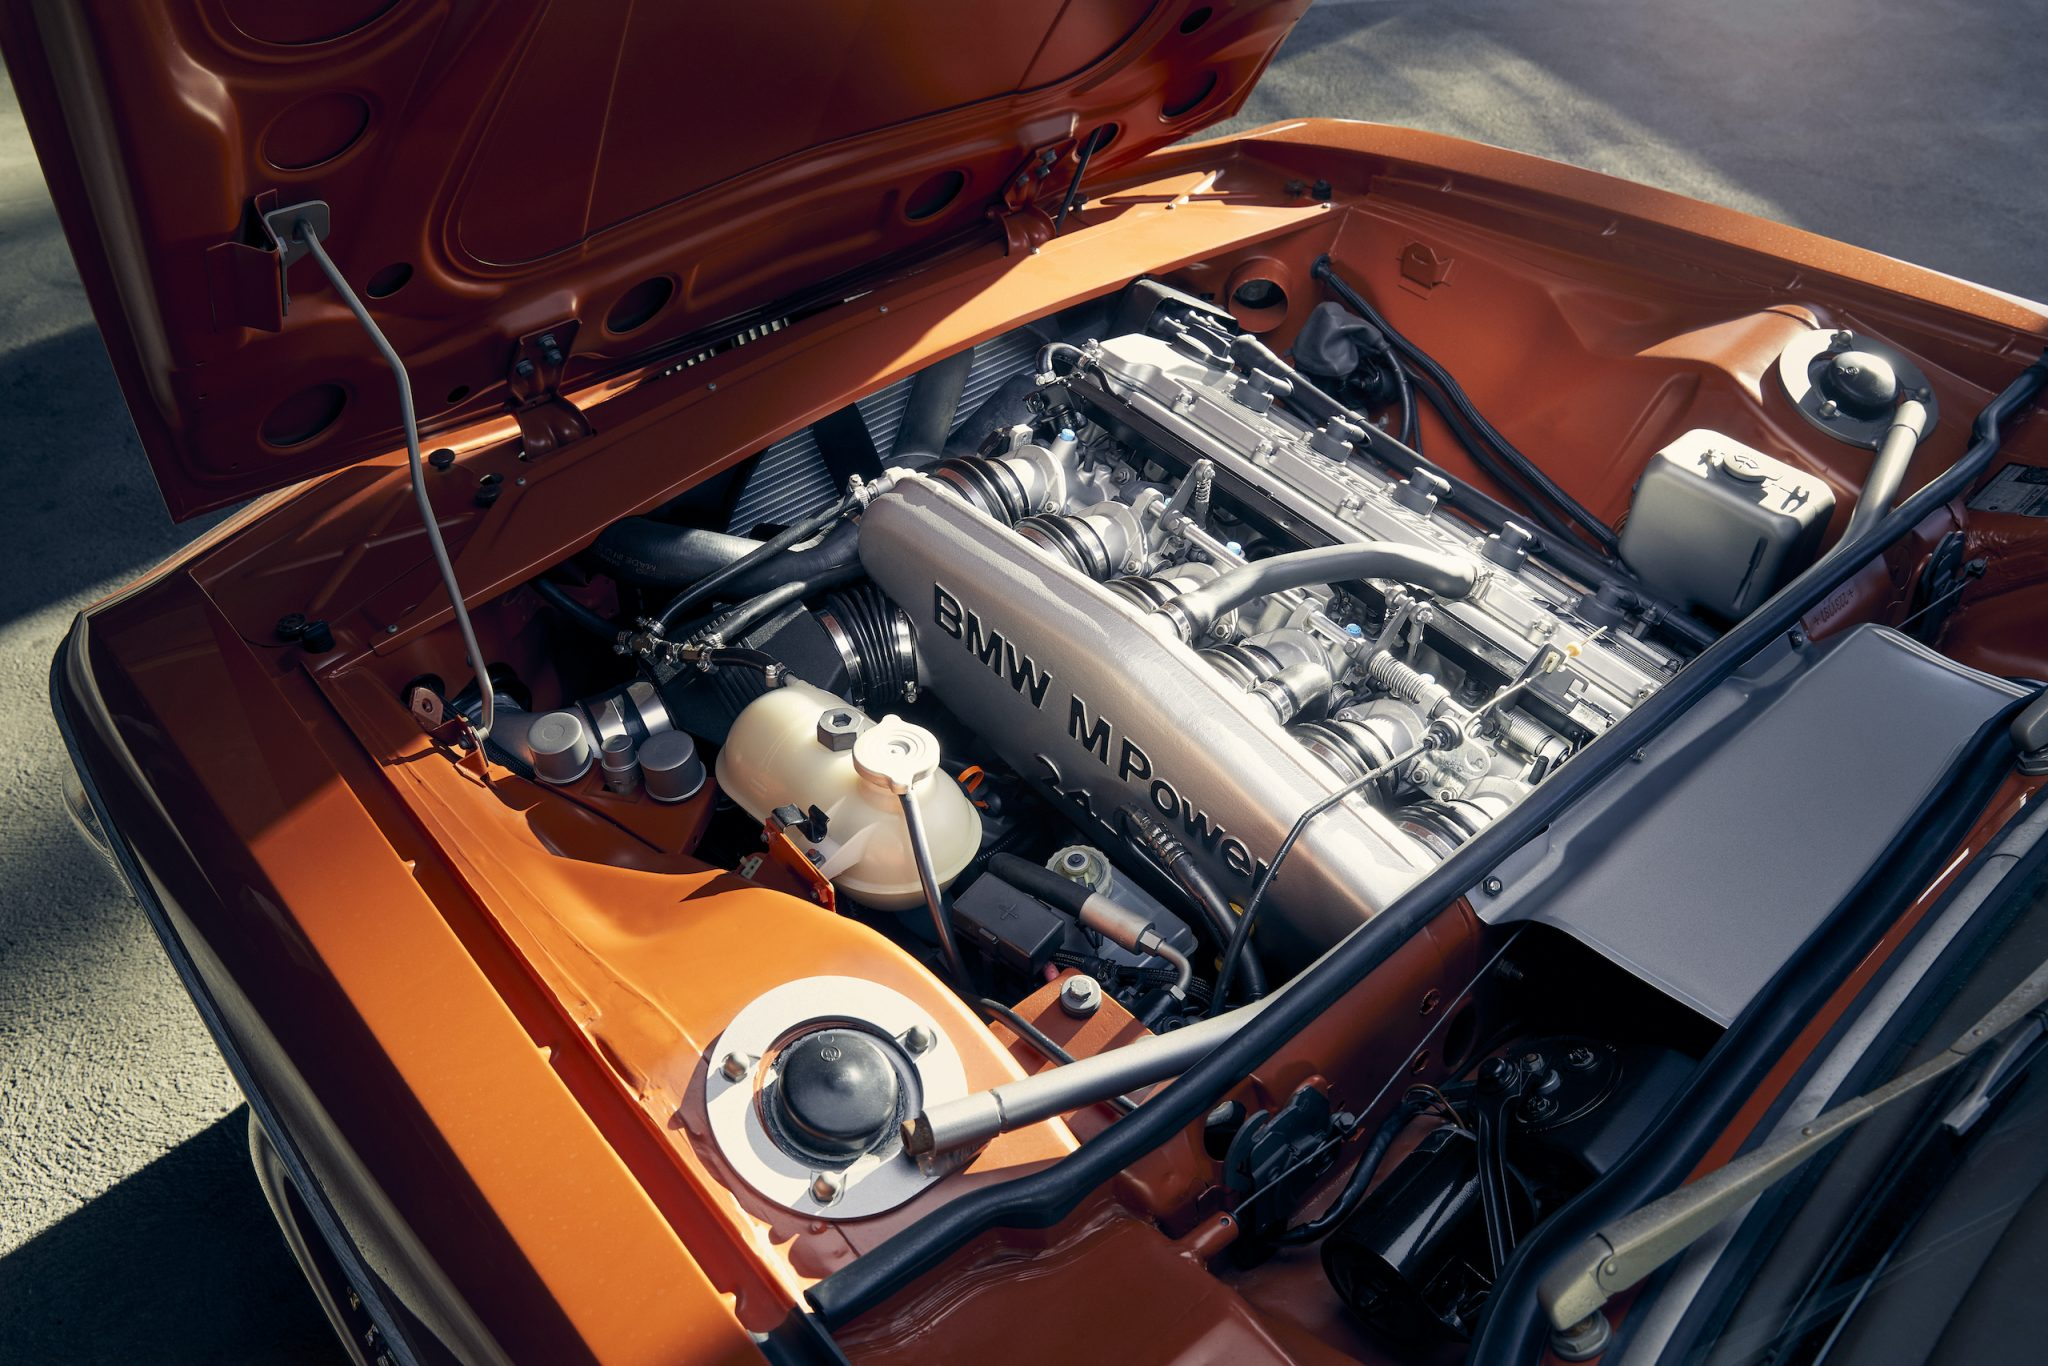 Standing in for the stock 3.0-liter inline-six is the later S38 3.5-liter six from the 1988–1995 BMW M5. This 311-hp crooner has more than 100 ponies on the original mill—and makes lovely engine-room jewelry. Joseph Puhy